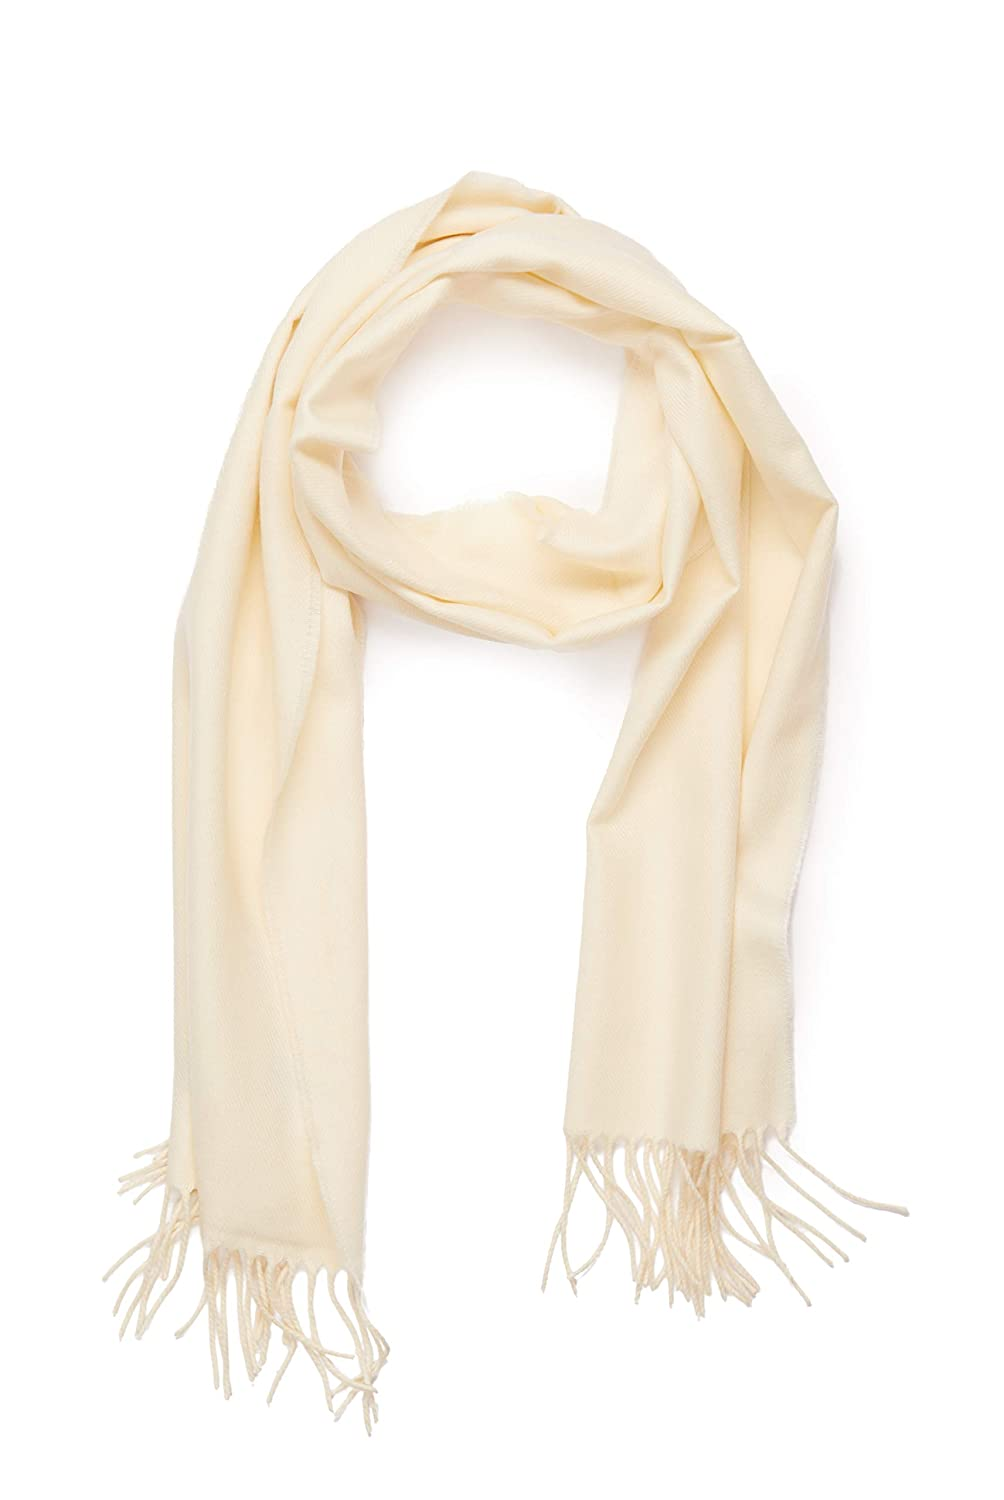 Cream INVERNO Super Soft Luxurious Cashmere Feel Warm Winter Solid Plain color Unisex Scarf